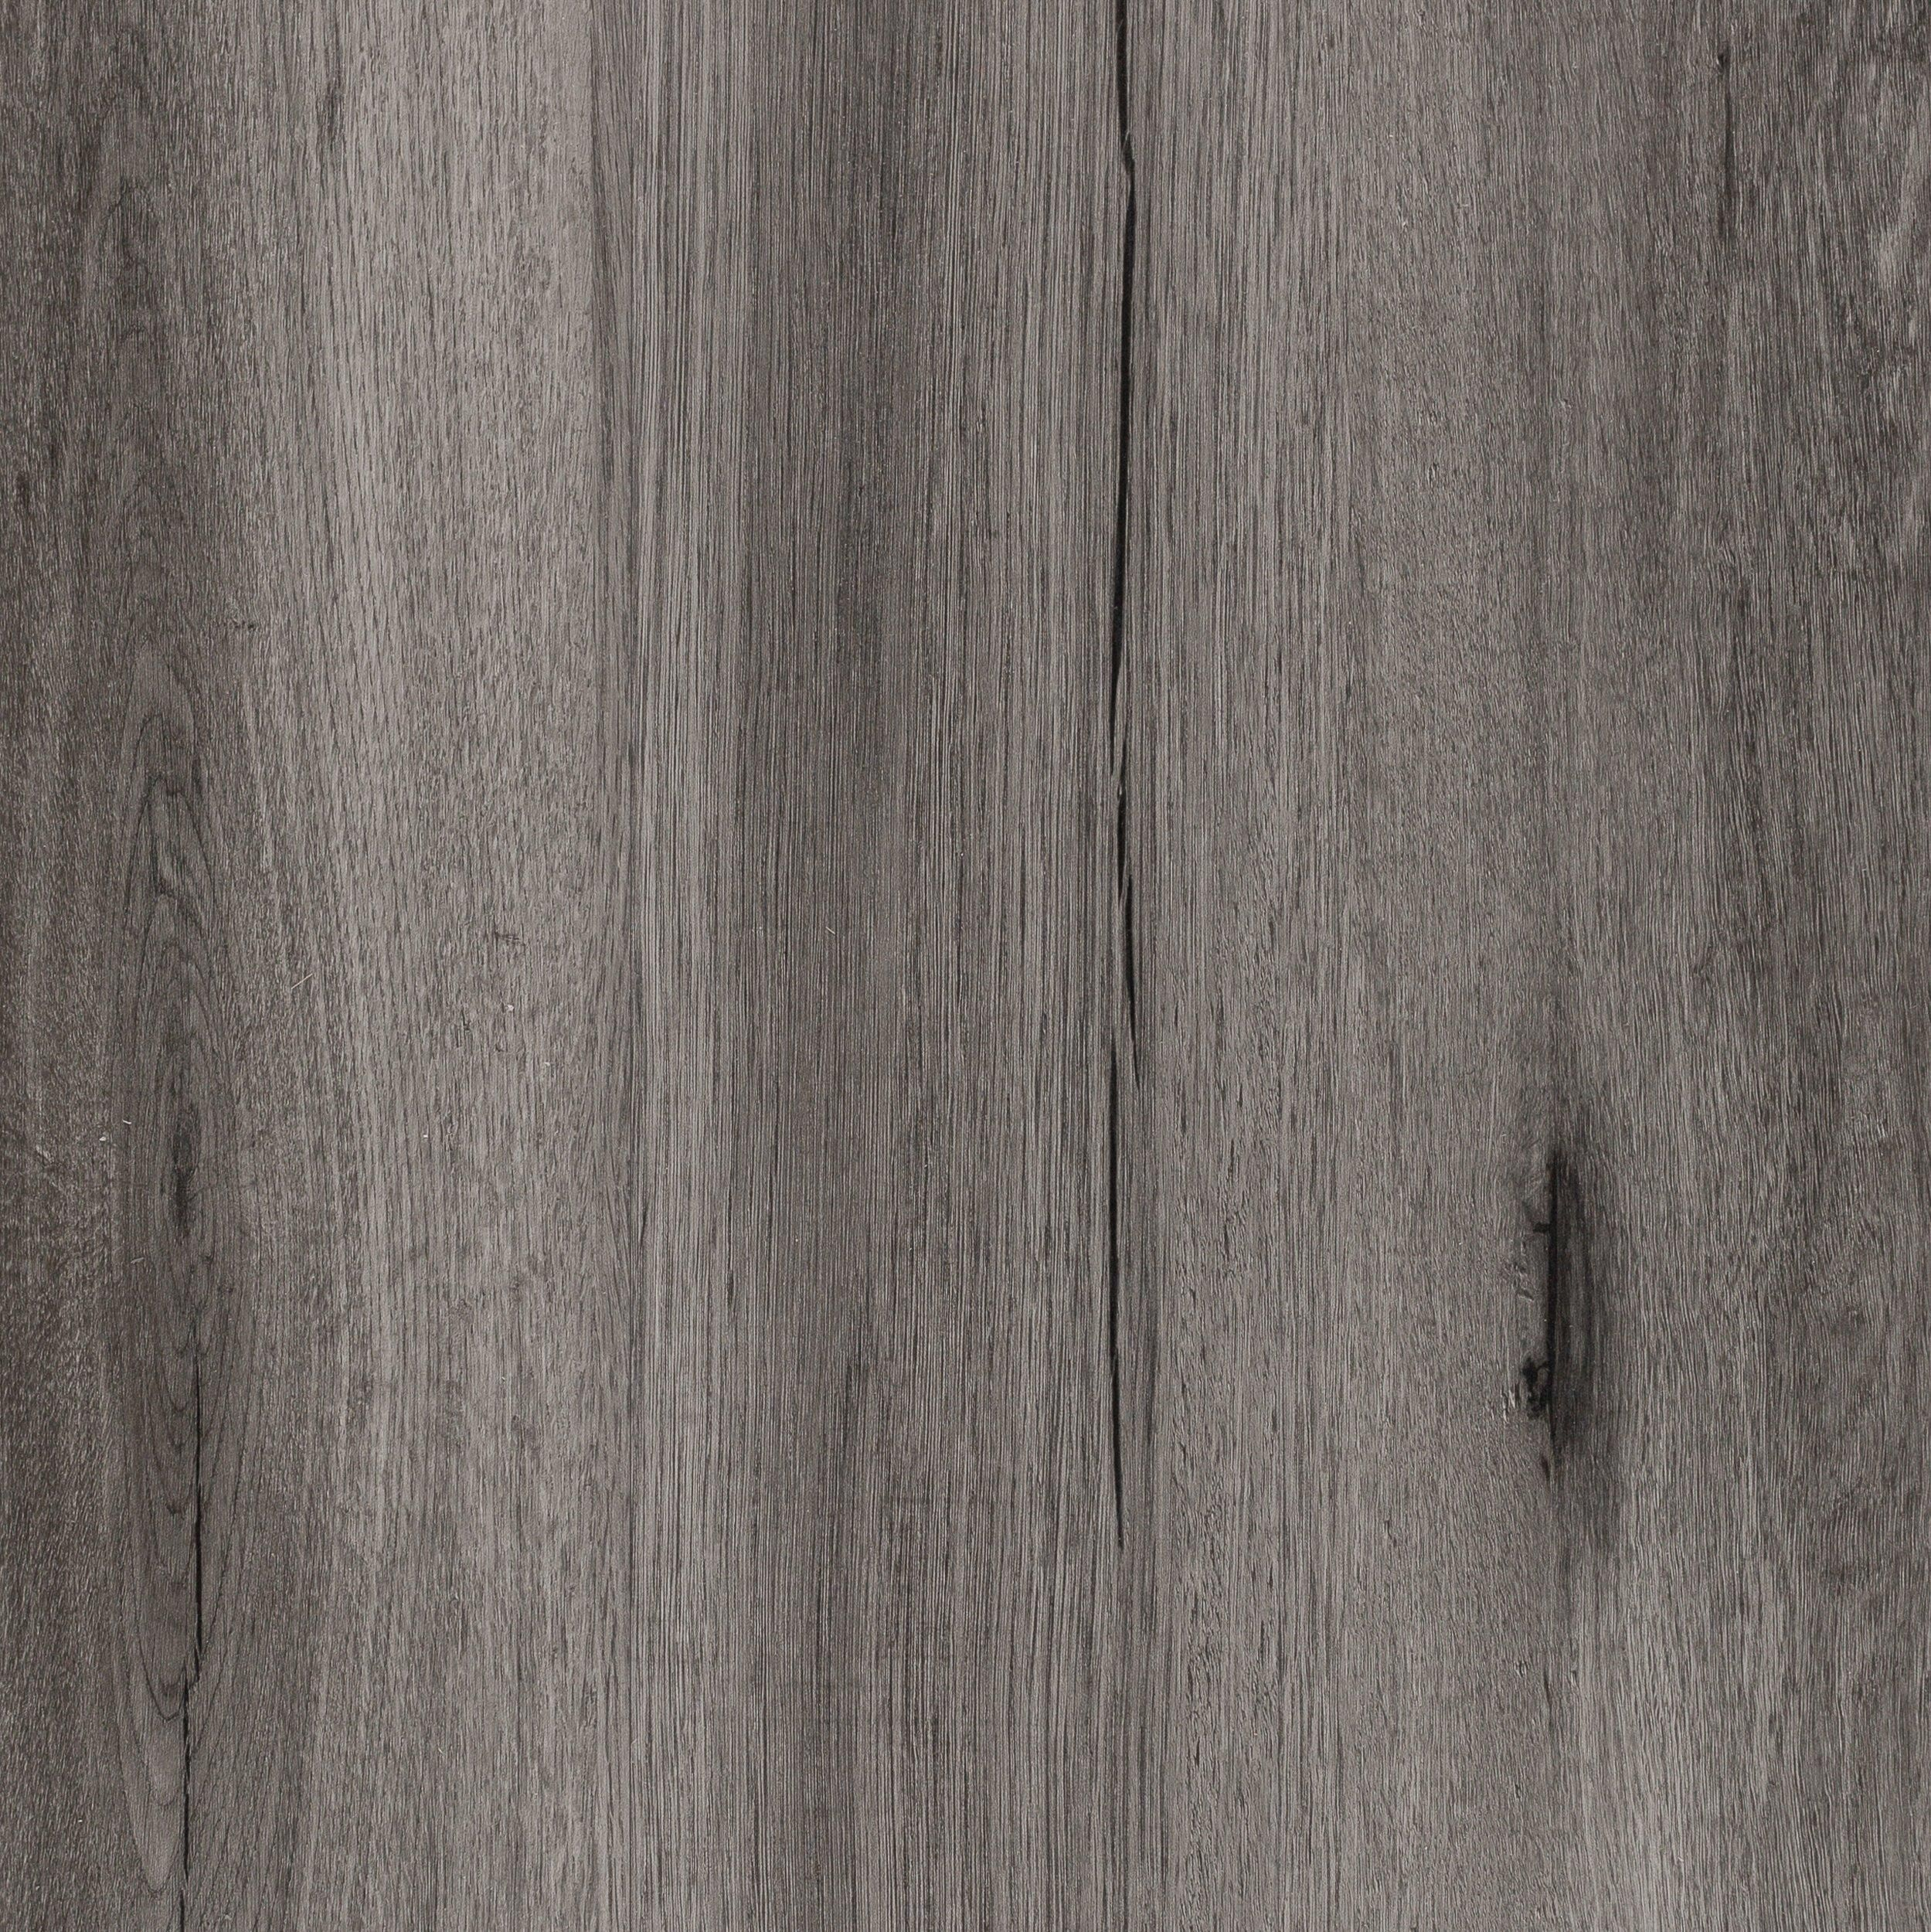 Twilight Ash Rigid Core Luxury Vinyl Plank Foam Back Luxury Vinyl Plank Vinyl Plank Luxury Vinyl